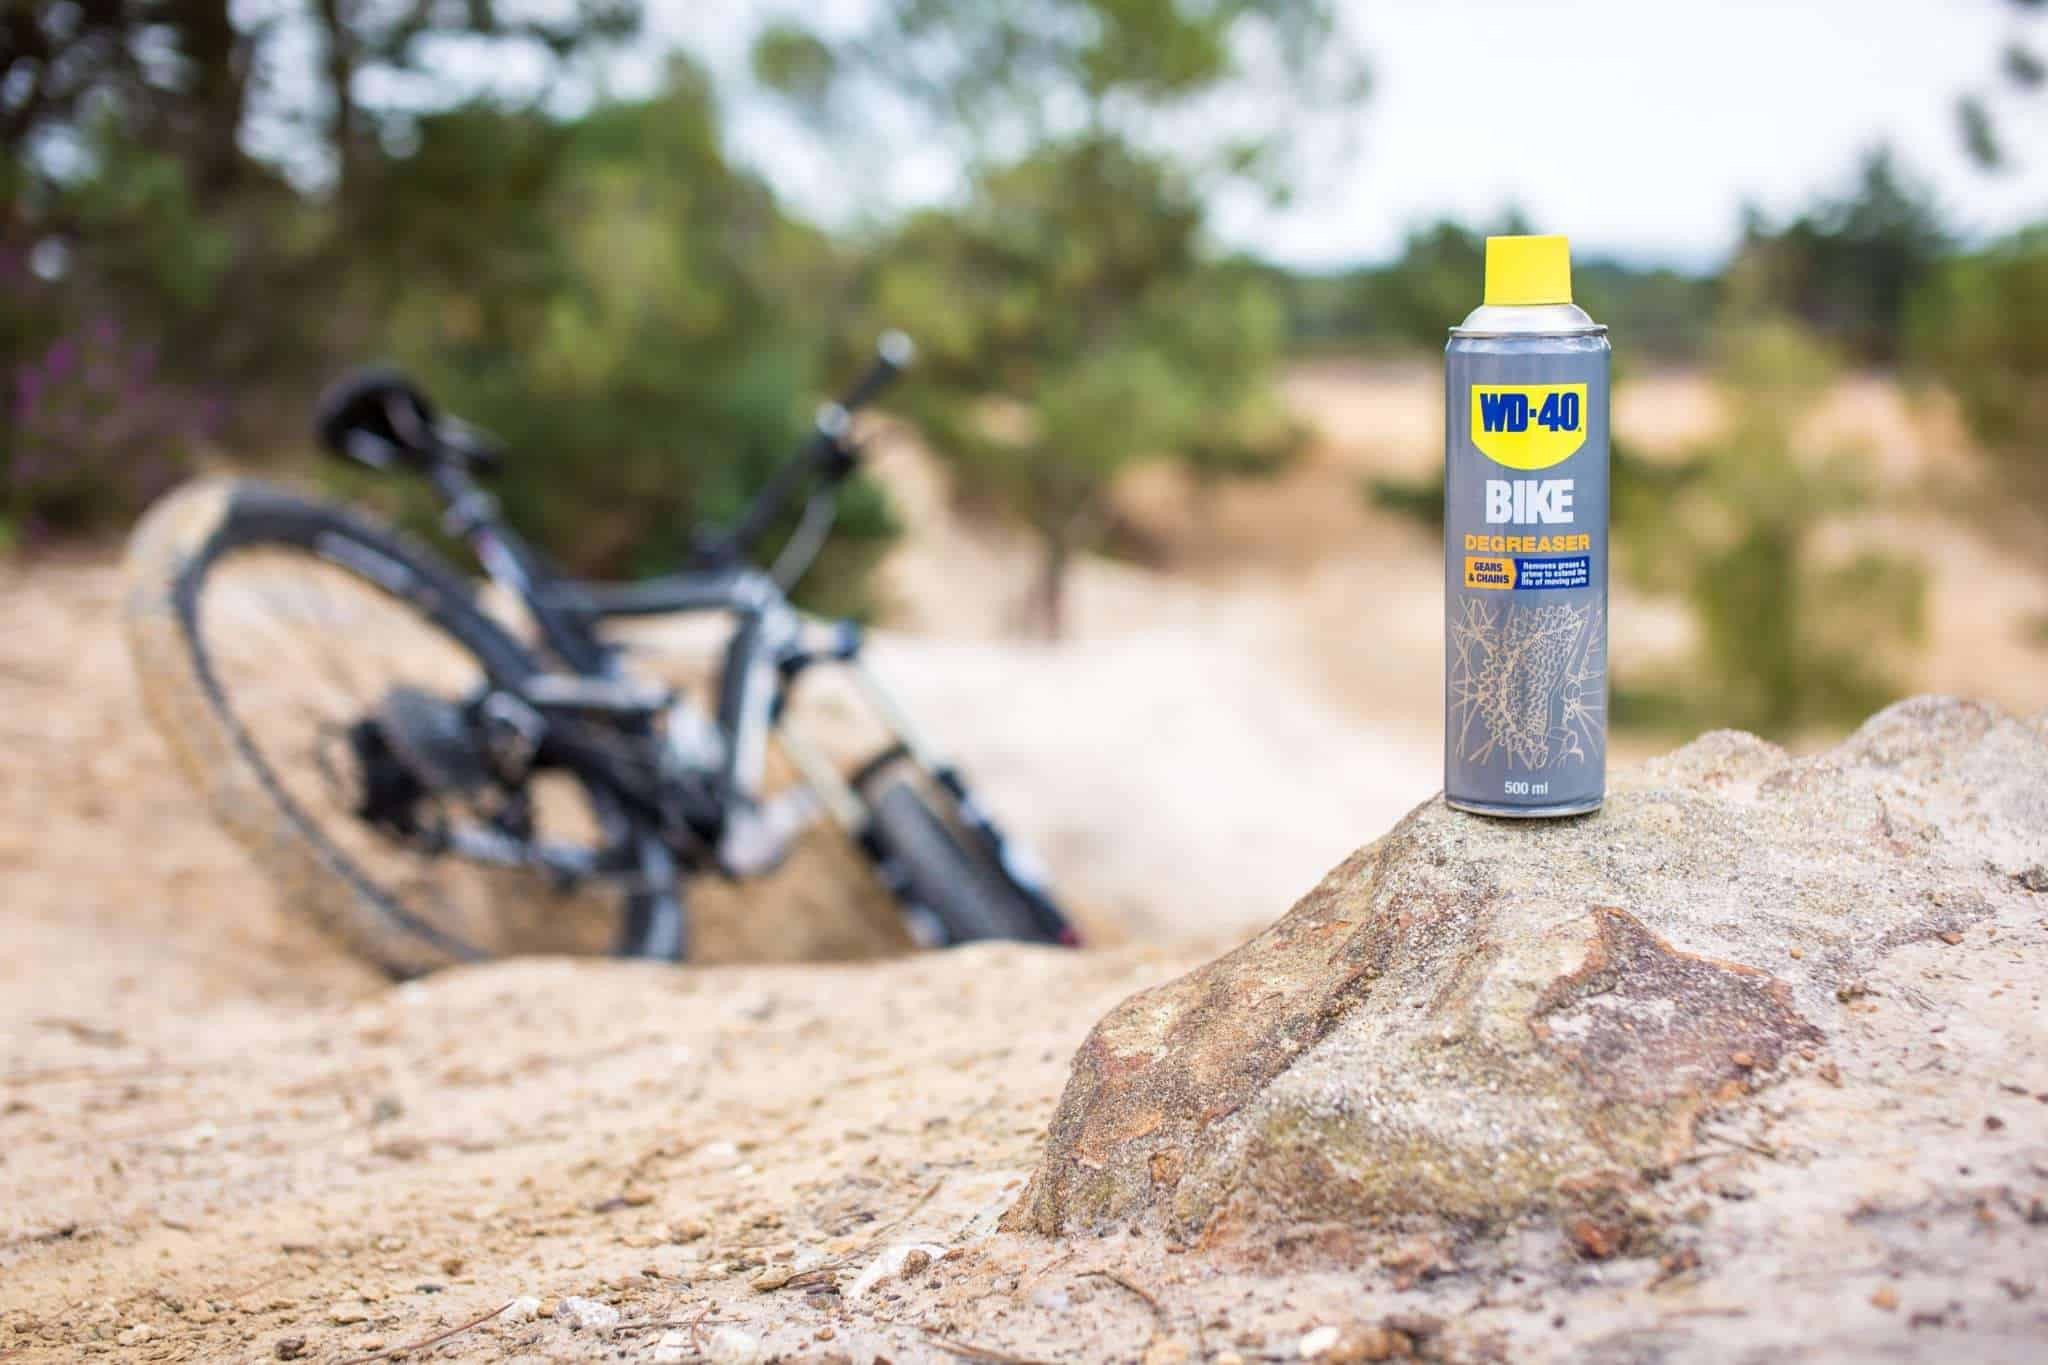 wd40 bike degreaser lifestyle